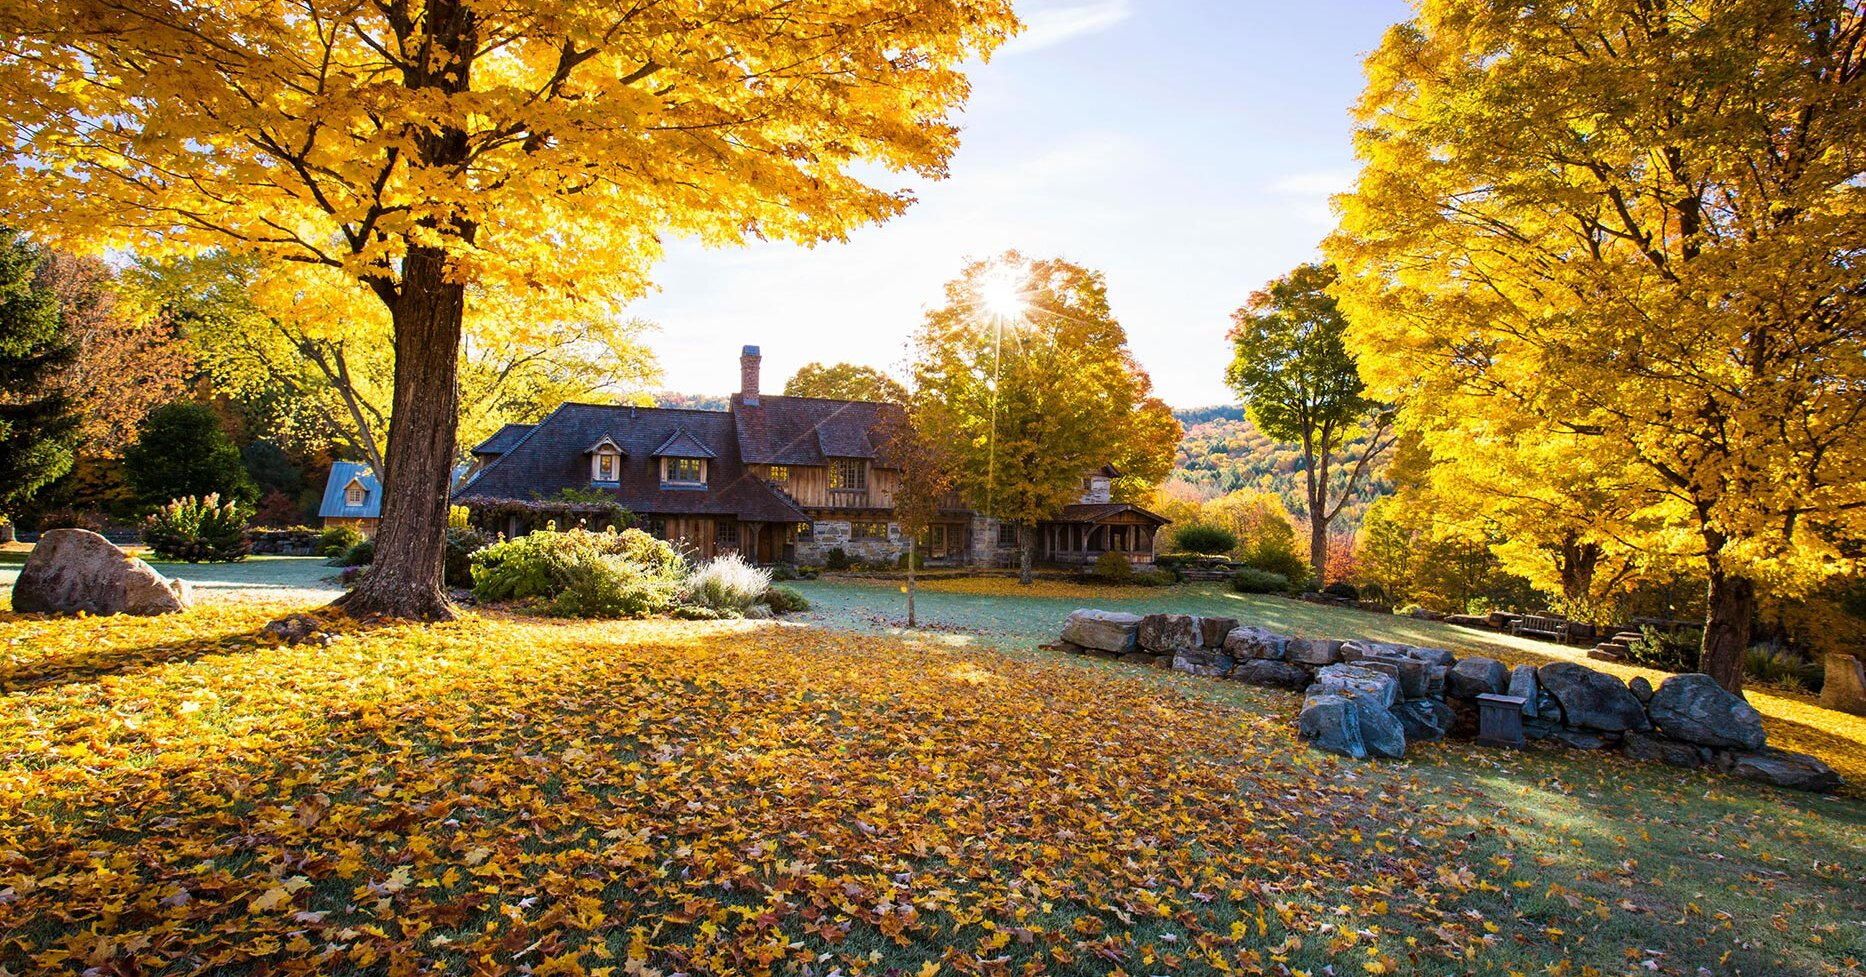 Six Fall Landscaping Ideas That Will Help Your Garden Transition Into the New Season